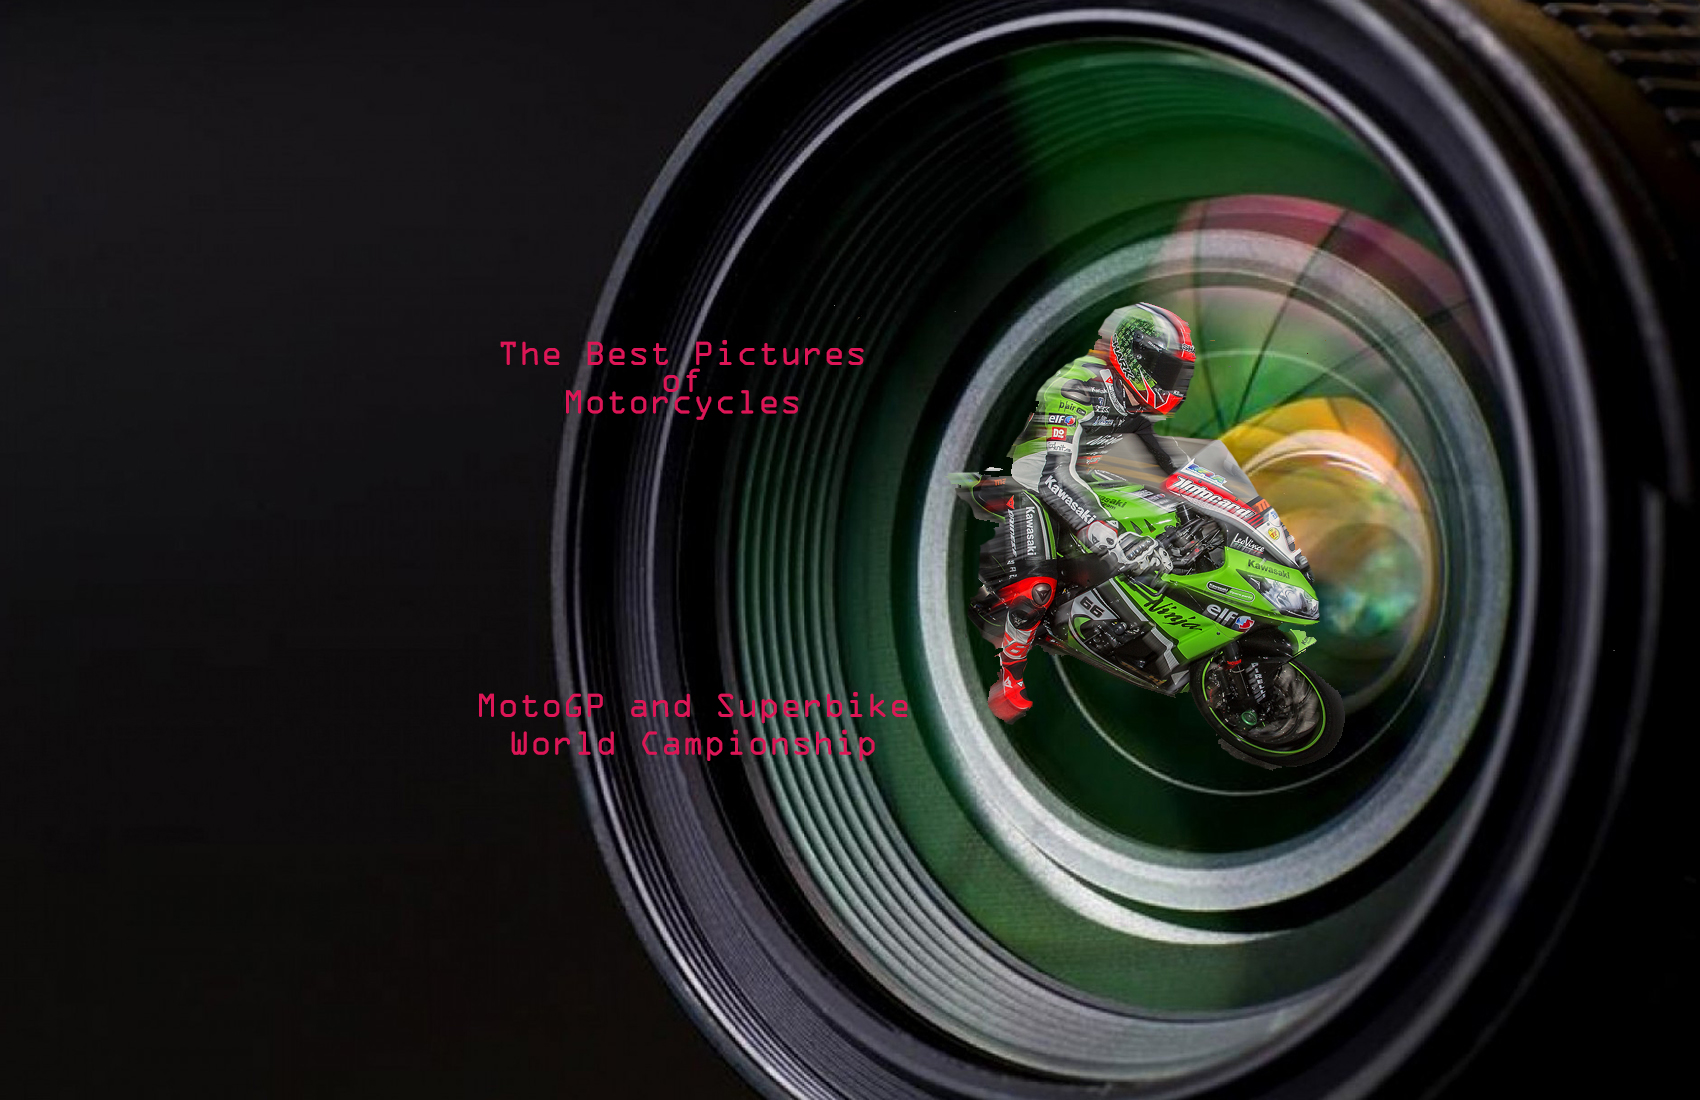 The Best Images of Motorcycles MotoGP Moto3 Moto2 and Superbike Realized from Roberto Magni and Daniela Comi By Foto ReD Photographic Agency